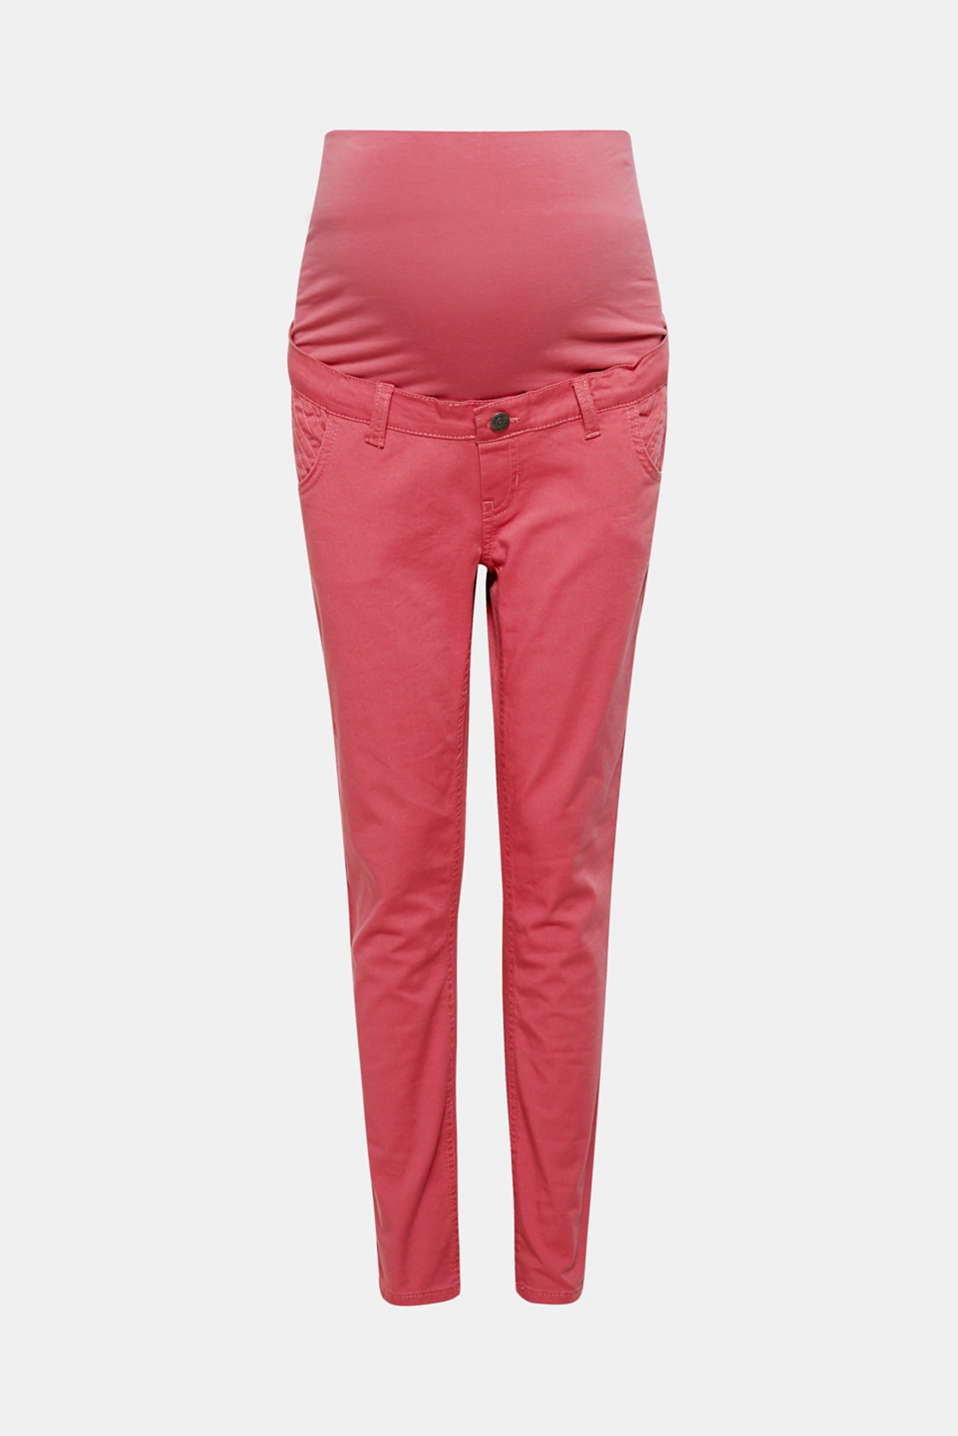 Get ready for spring with these coloured, stretchy jeans with tonal decorative stitching and an over-bump waistband!